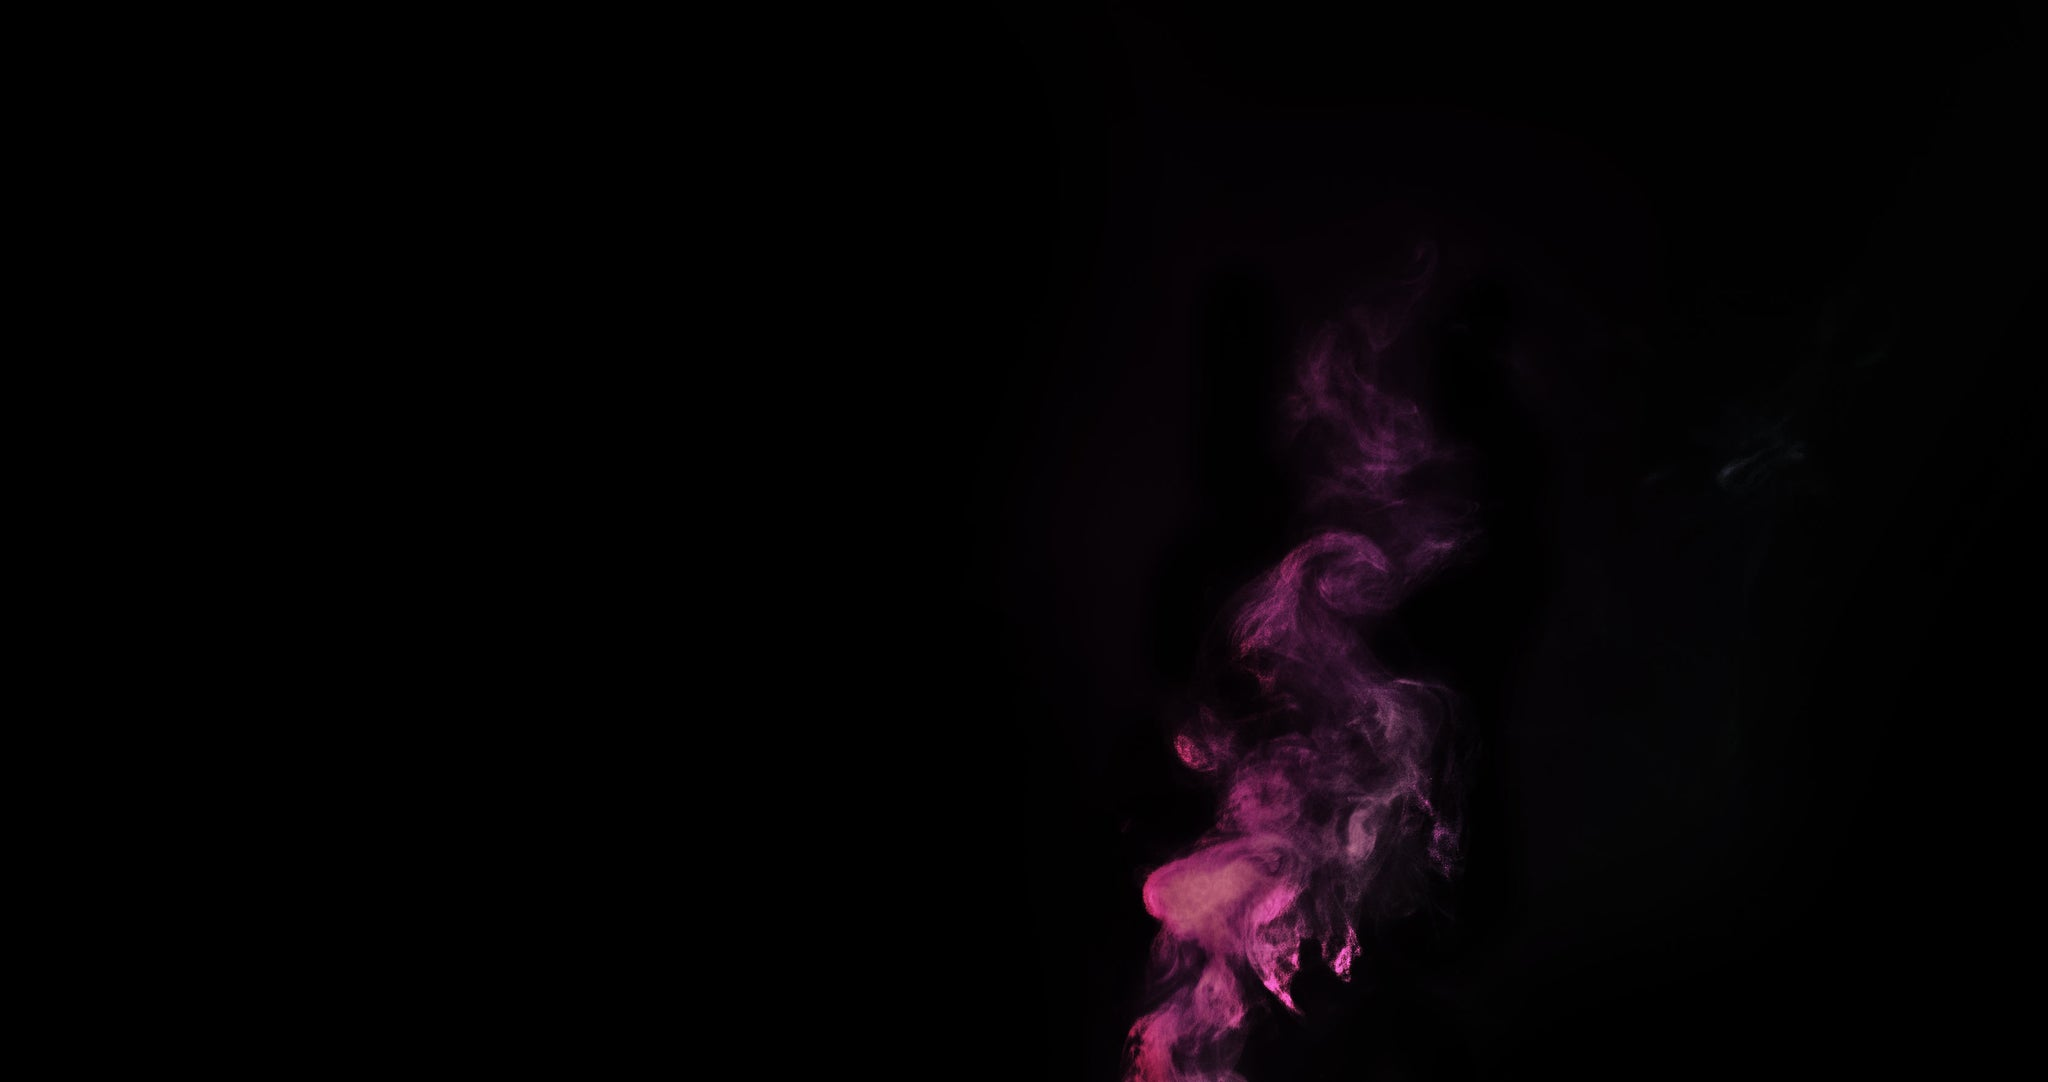 Black Background with Purple Smoke